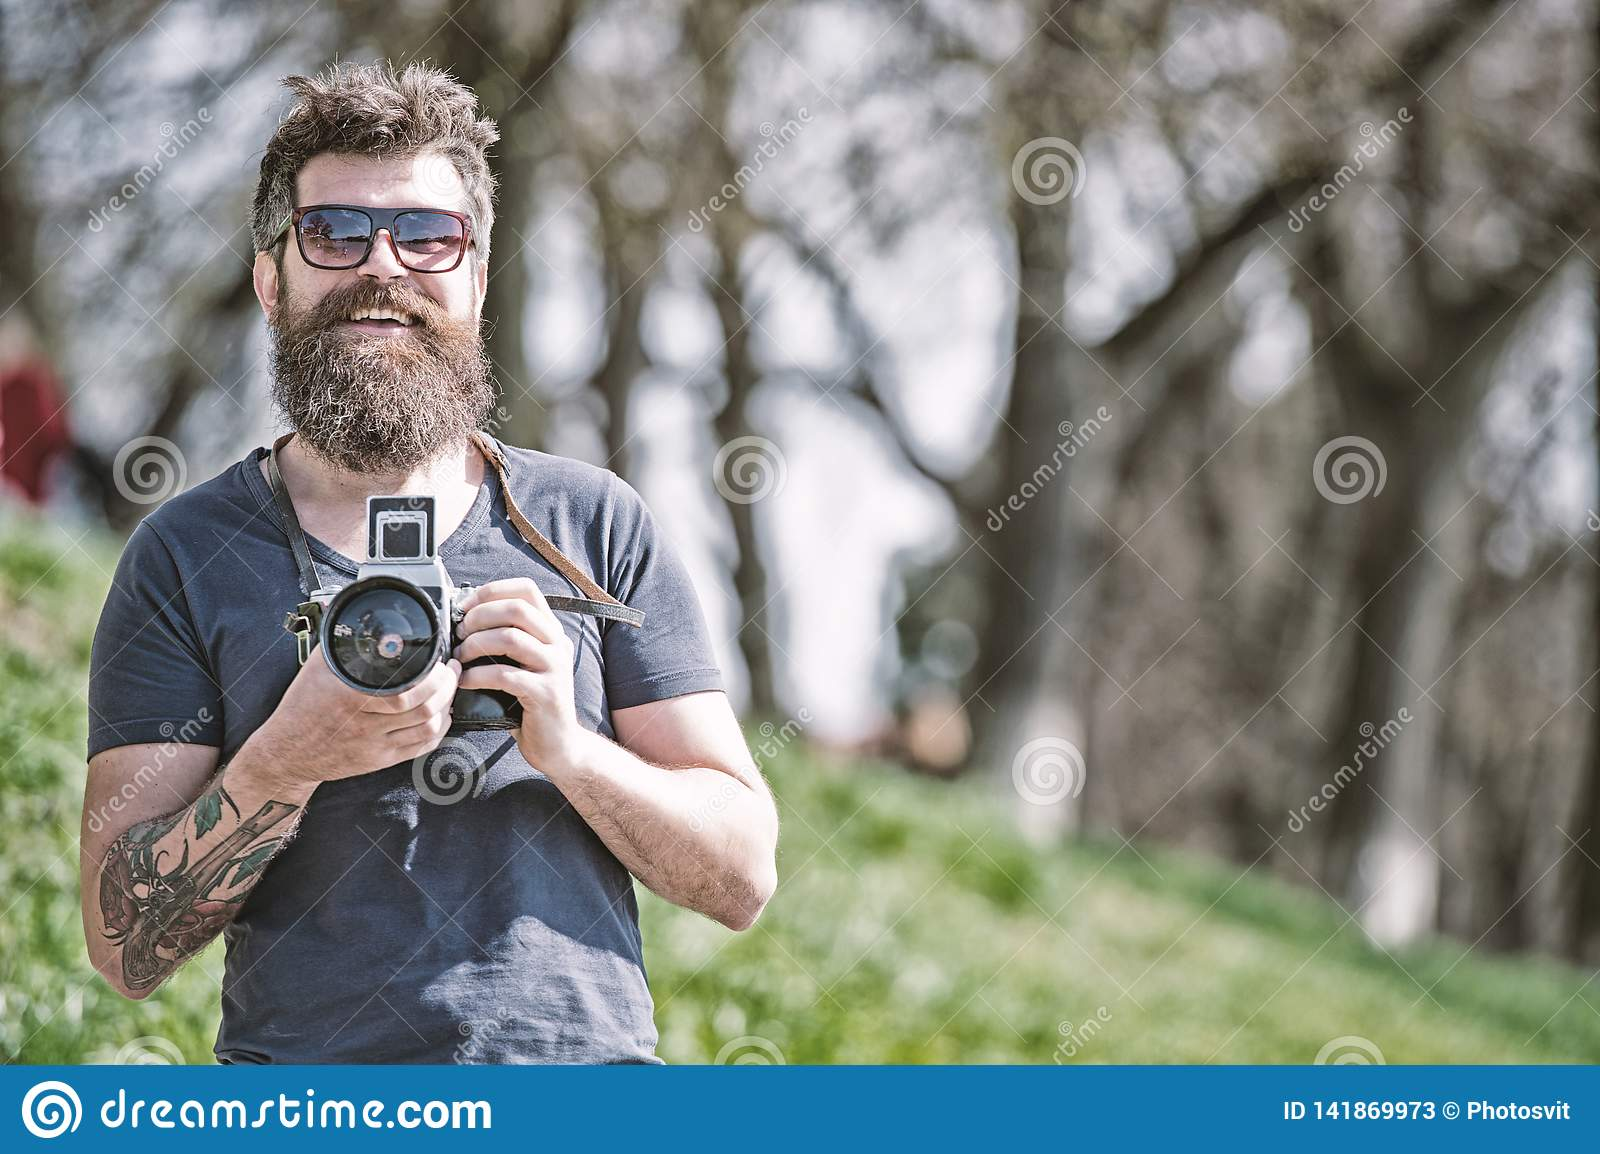 Photographer concept. Man bearded hipster photographer hold vintage camera. Photographer with beard and mustache amateur